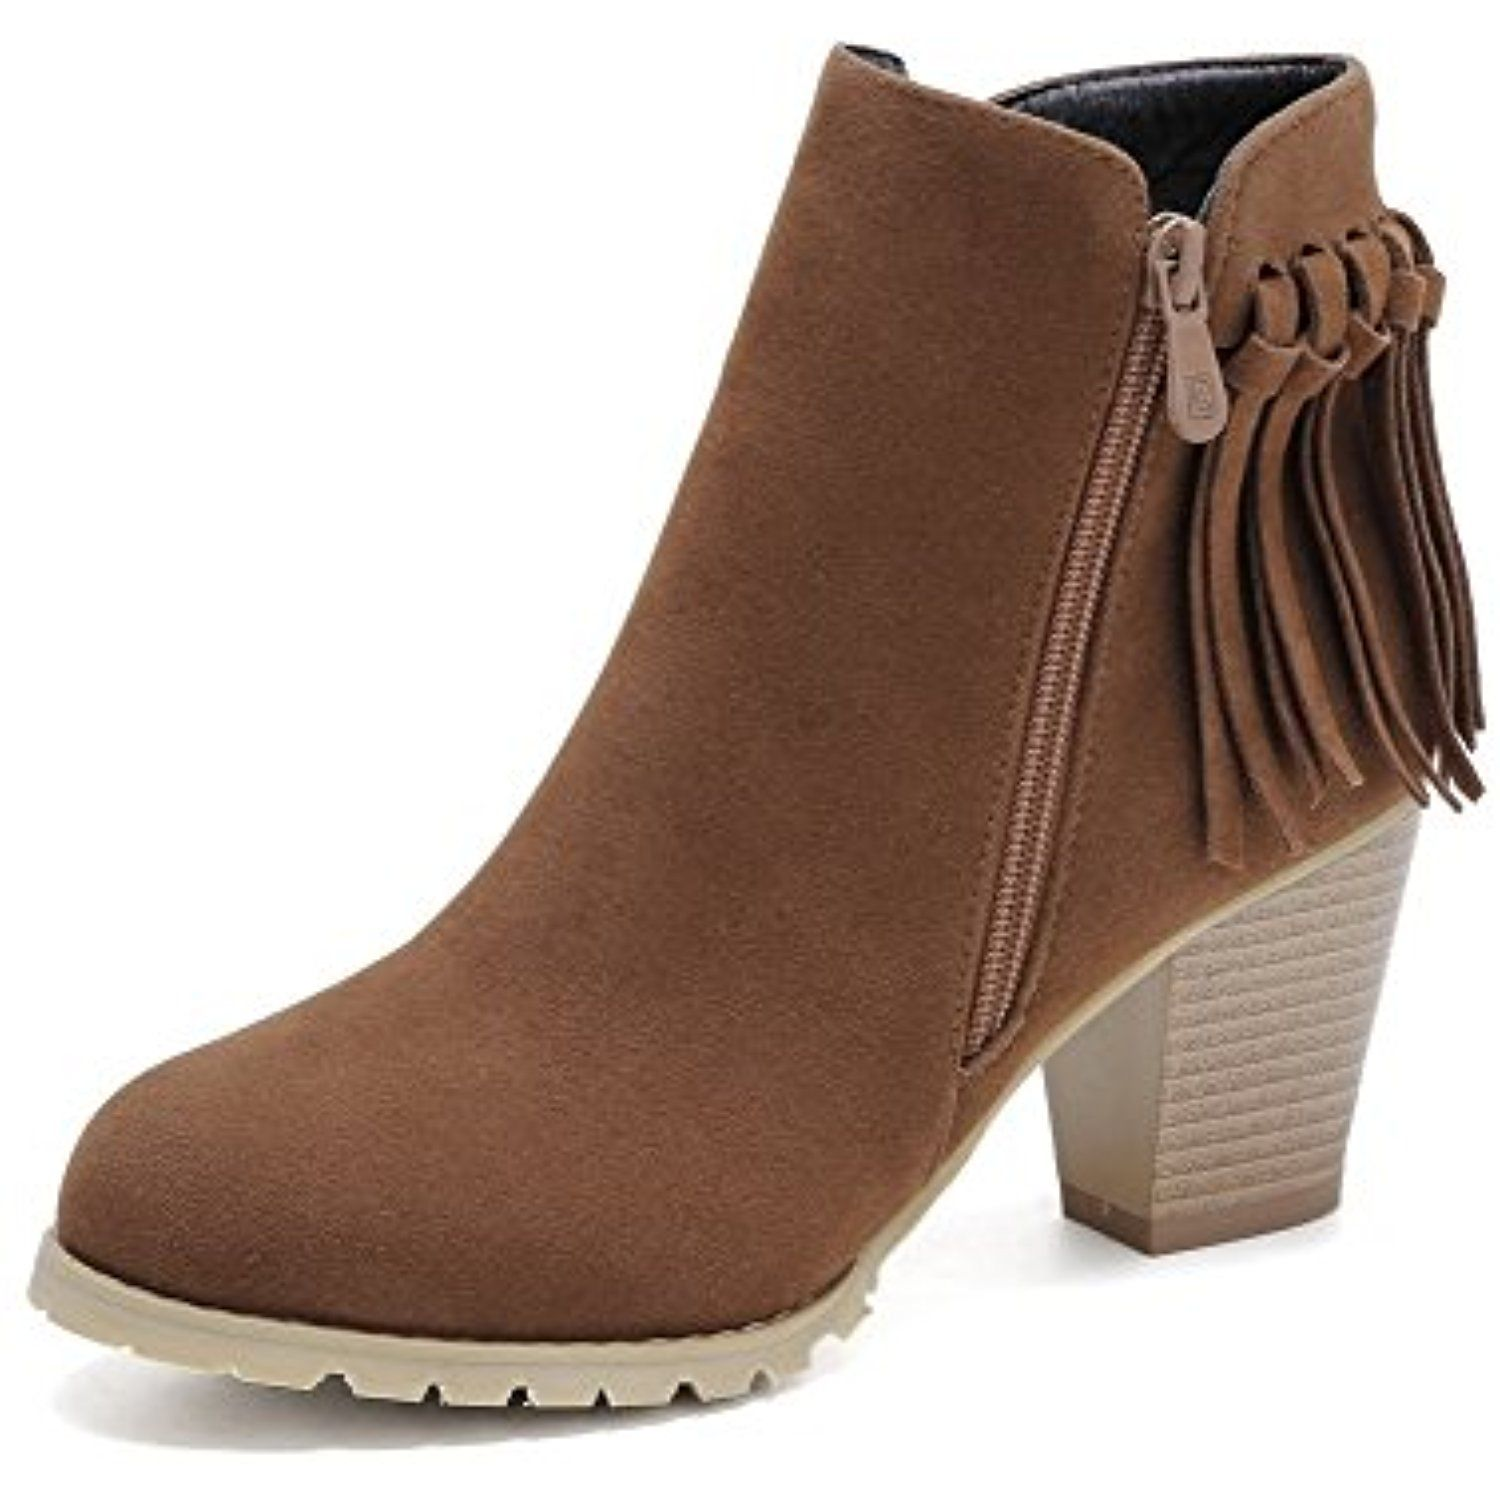 Women's Fringed Imitated Suede High Heels Zipper Round Closed Toe Boots